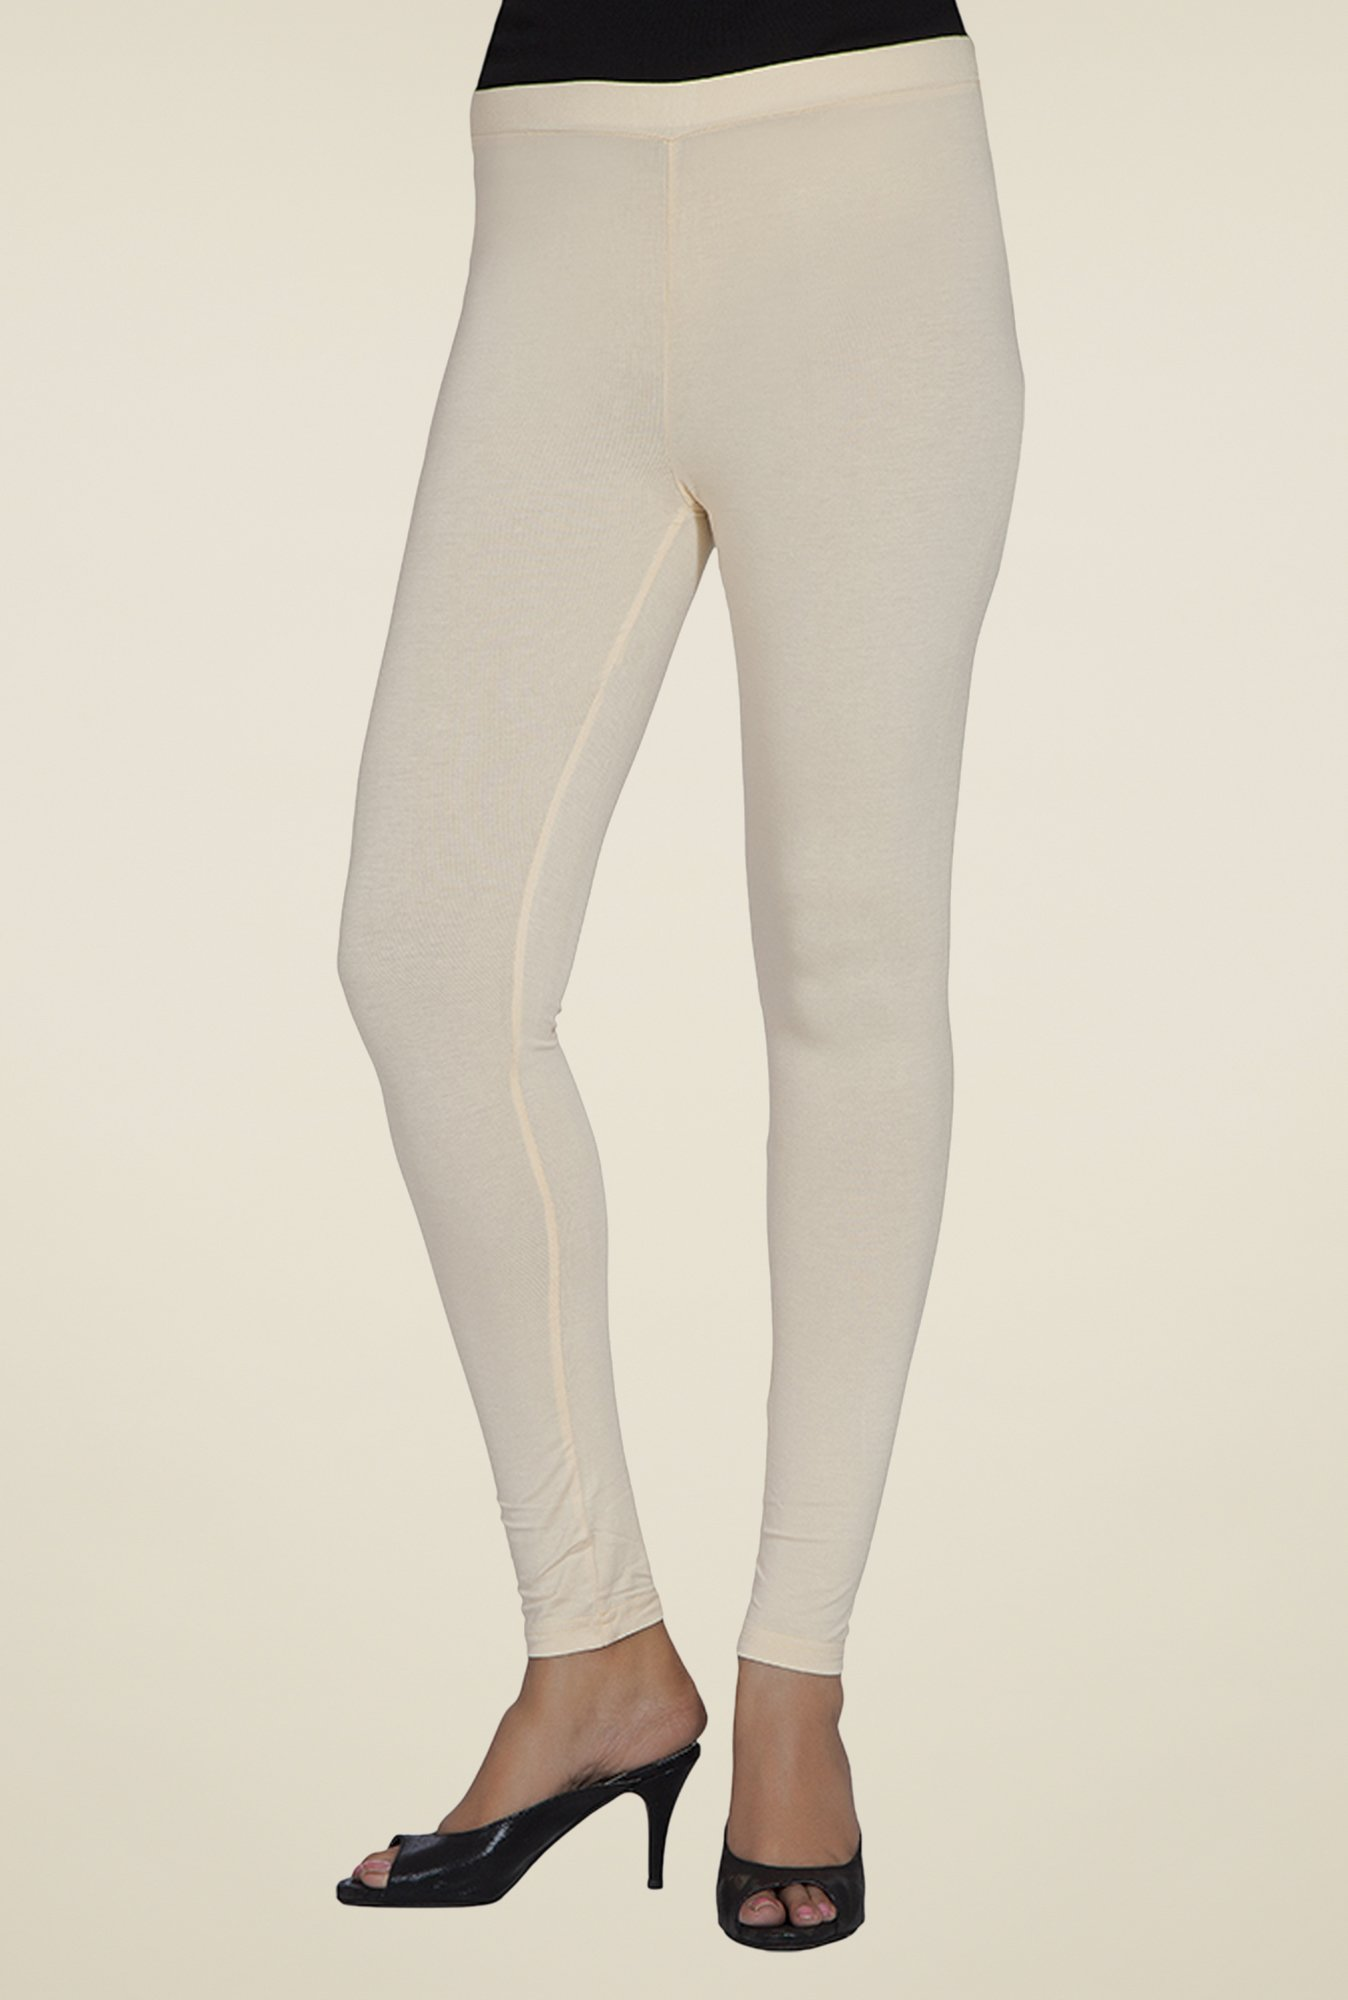 Desi Belle Beige Solid Leggings